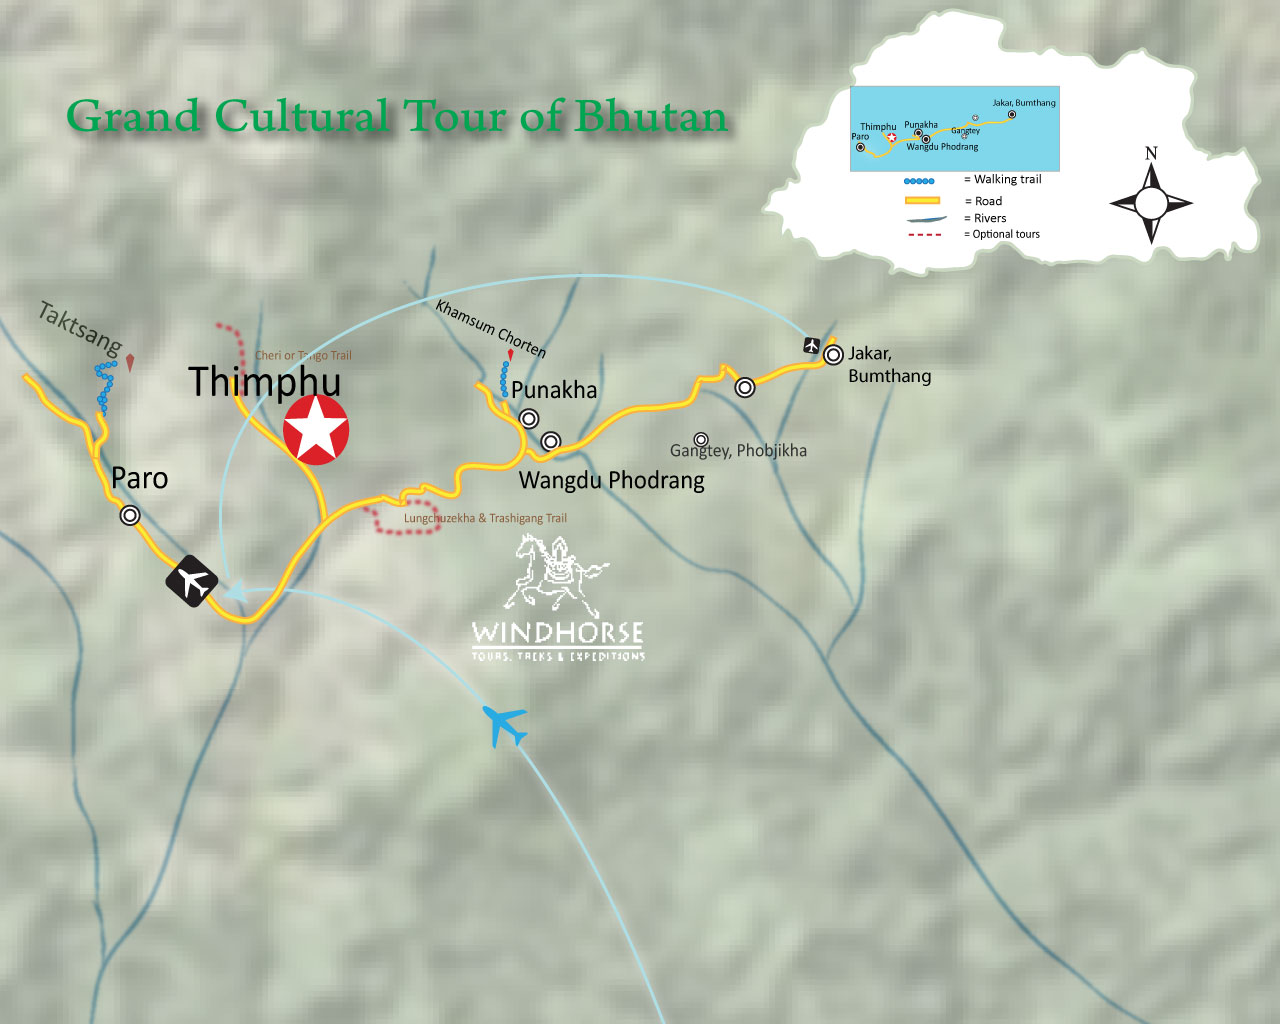 Grand Cultural Tour of Bhutan Trip Map, Route Map